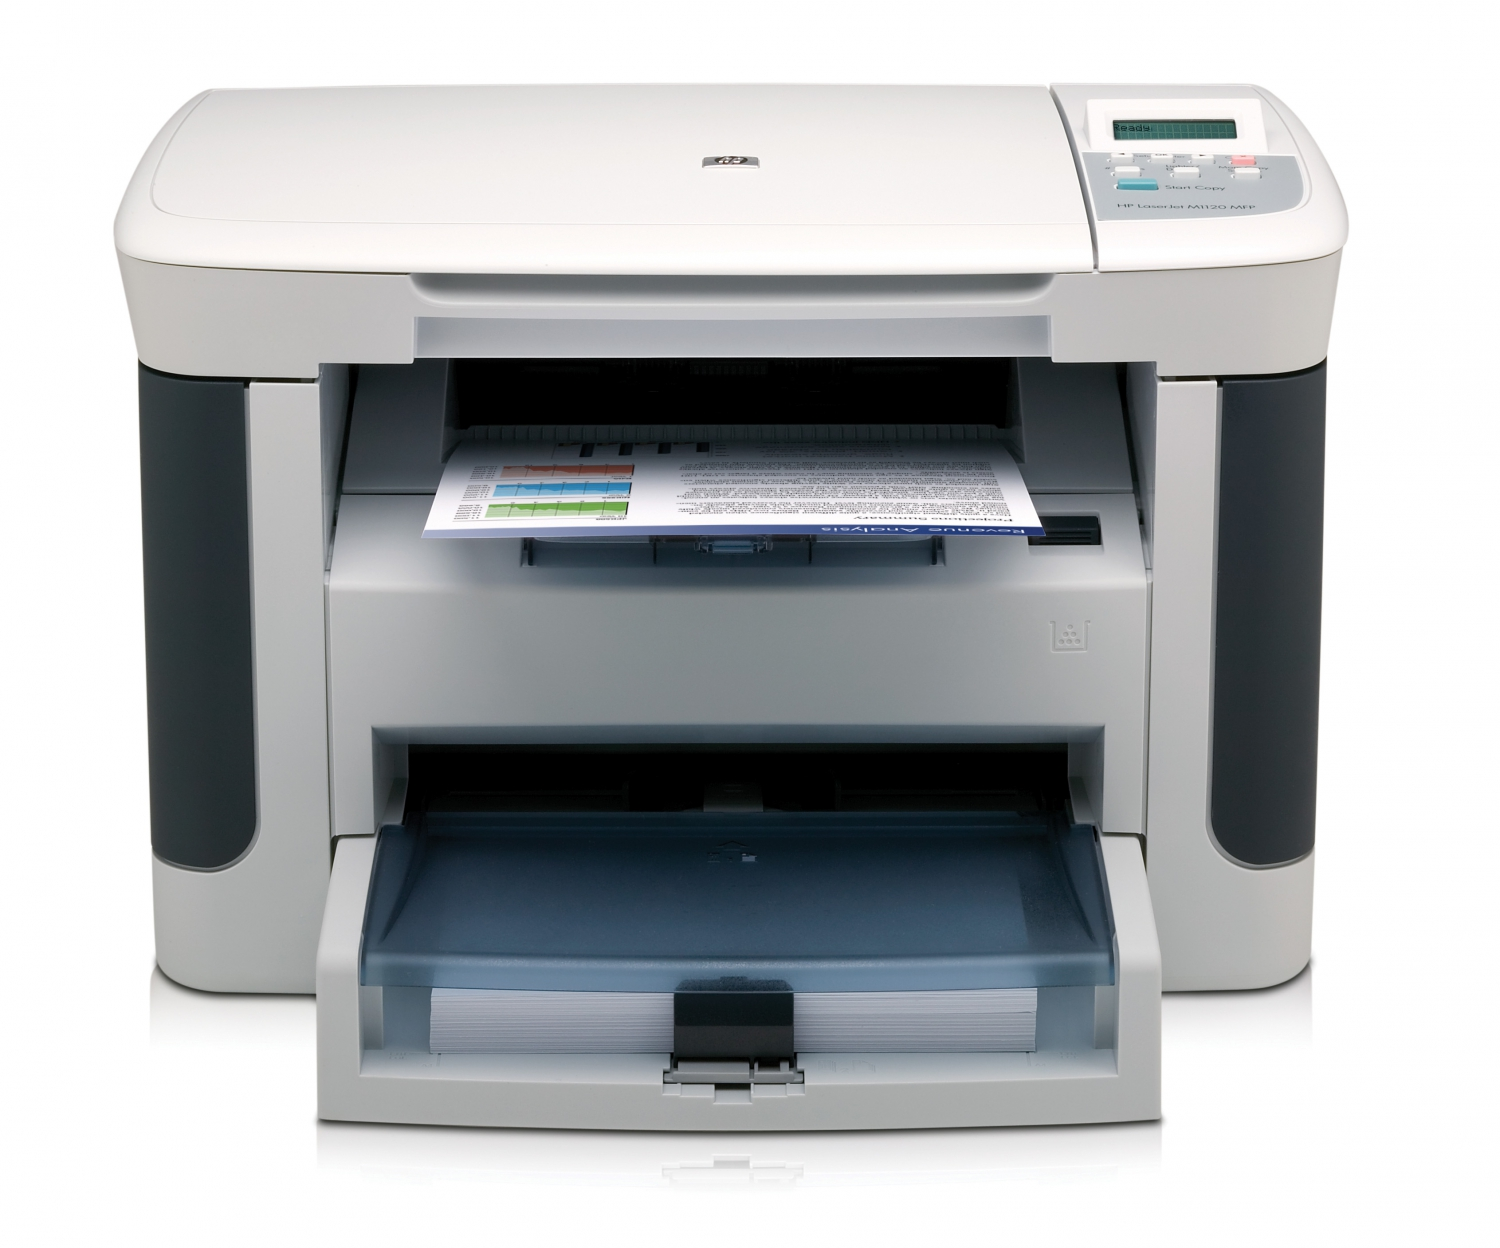 Принтер HP LaserJet M1120 Multifunction Printer